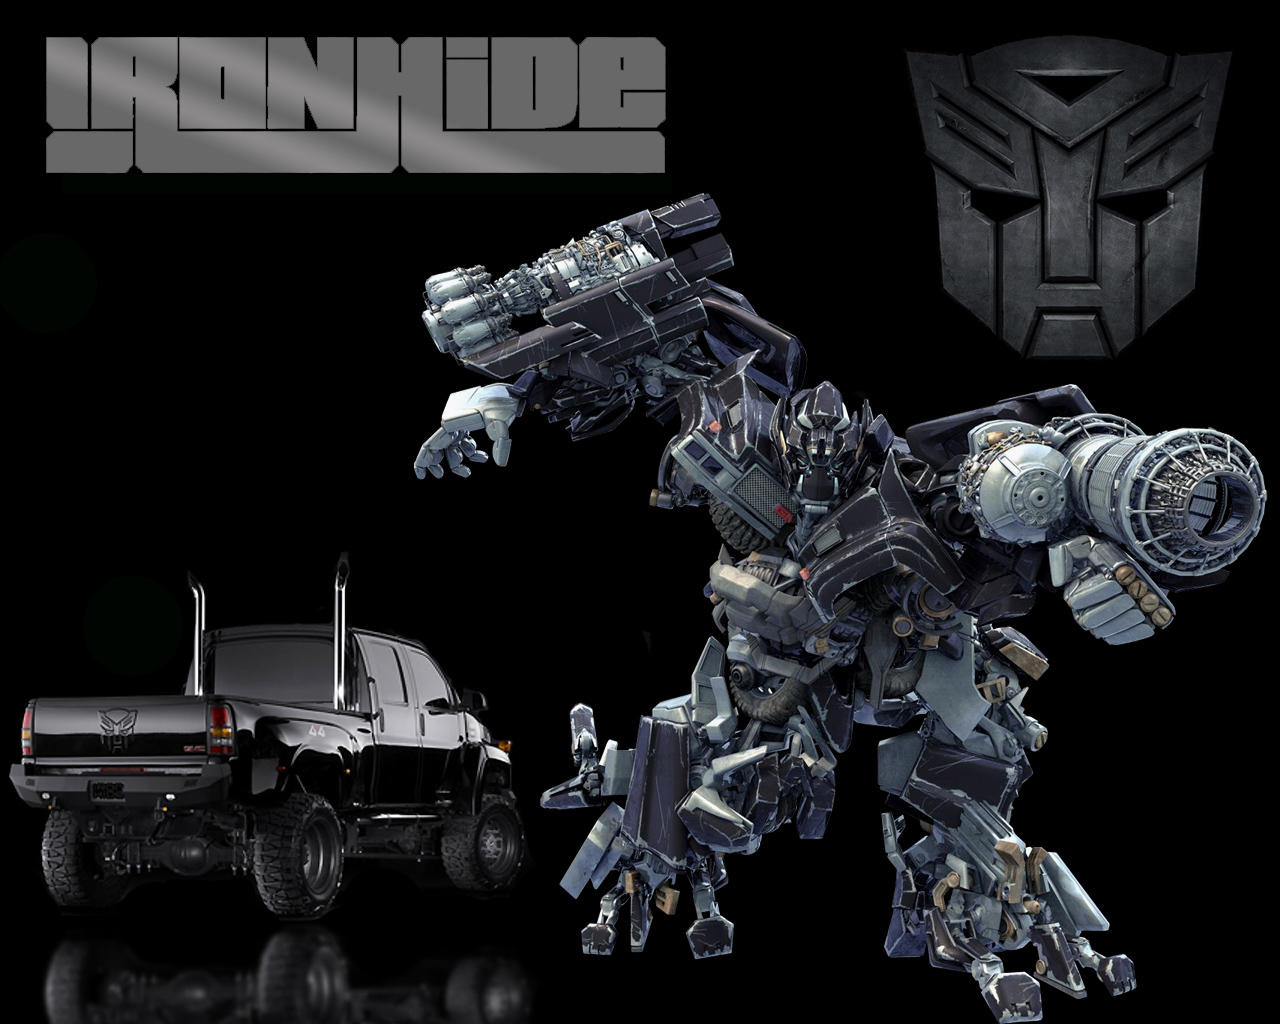 Transformers images Transformers HD wallpaper and background photos